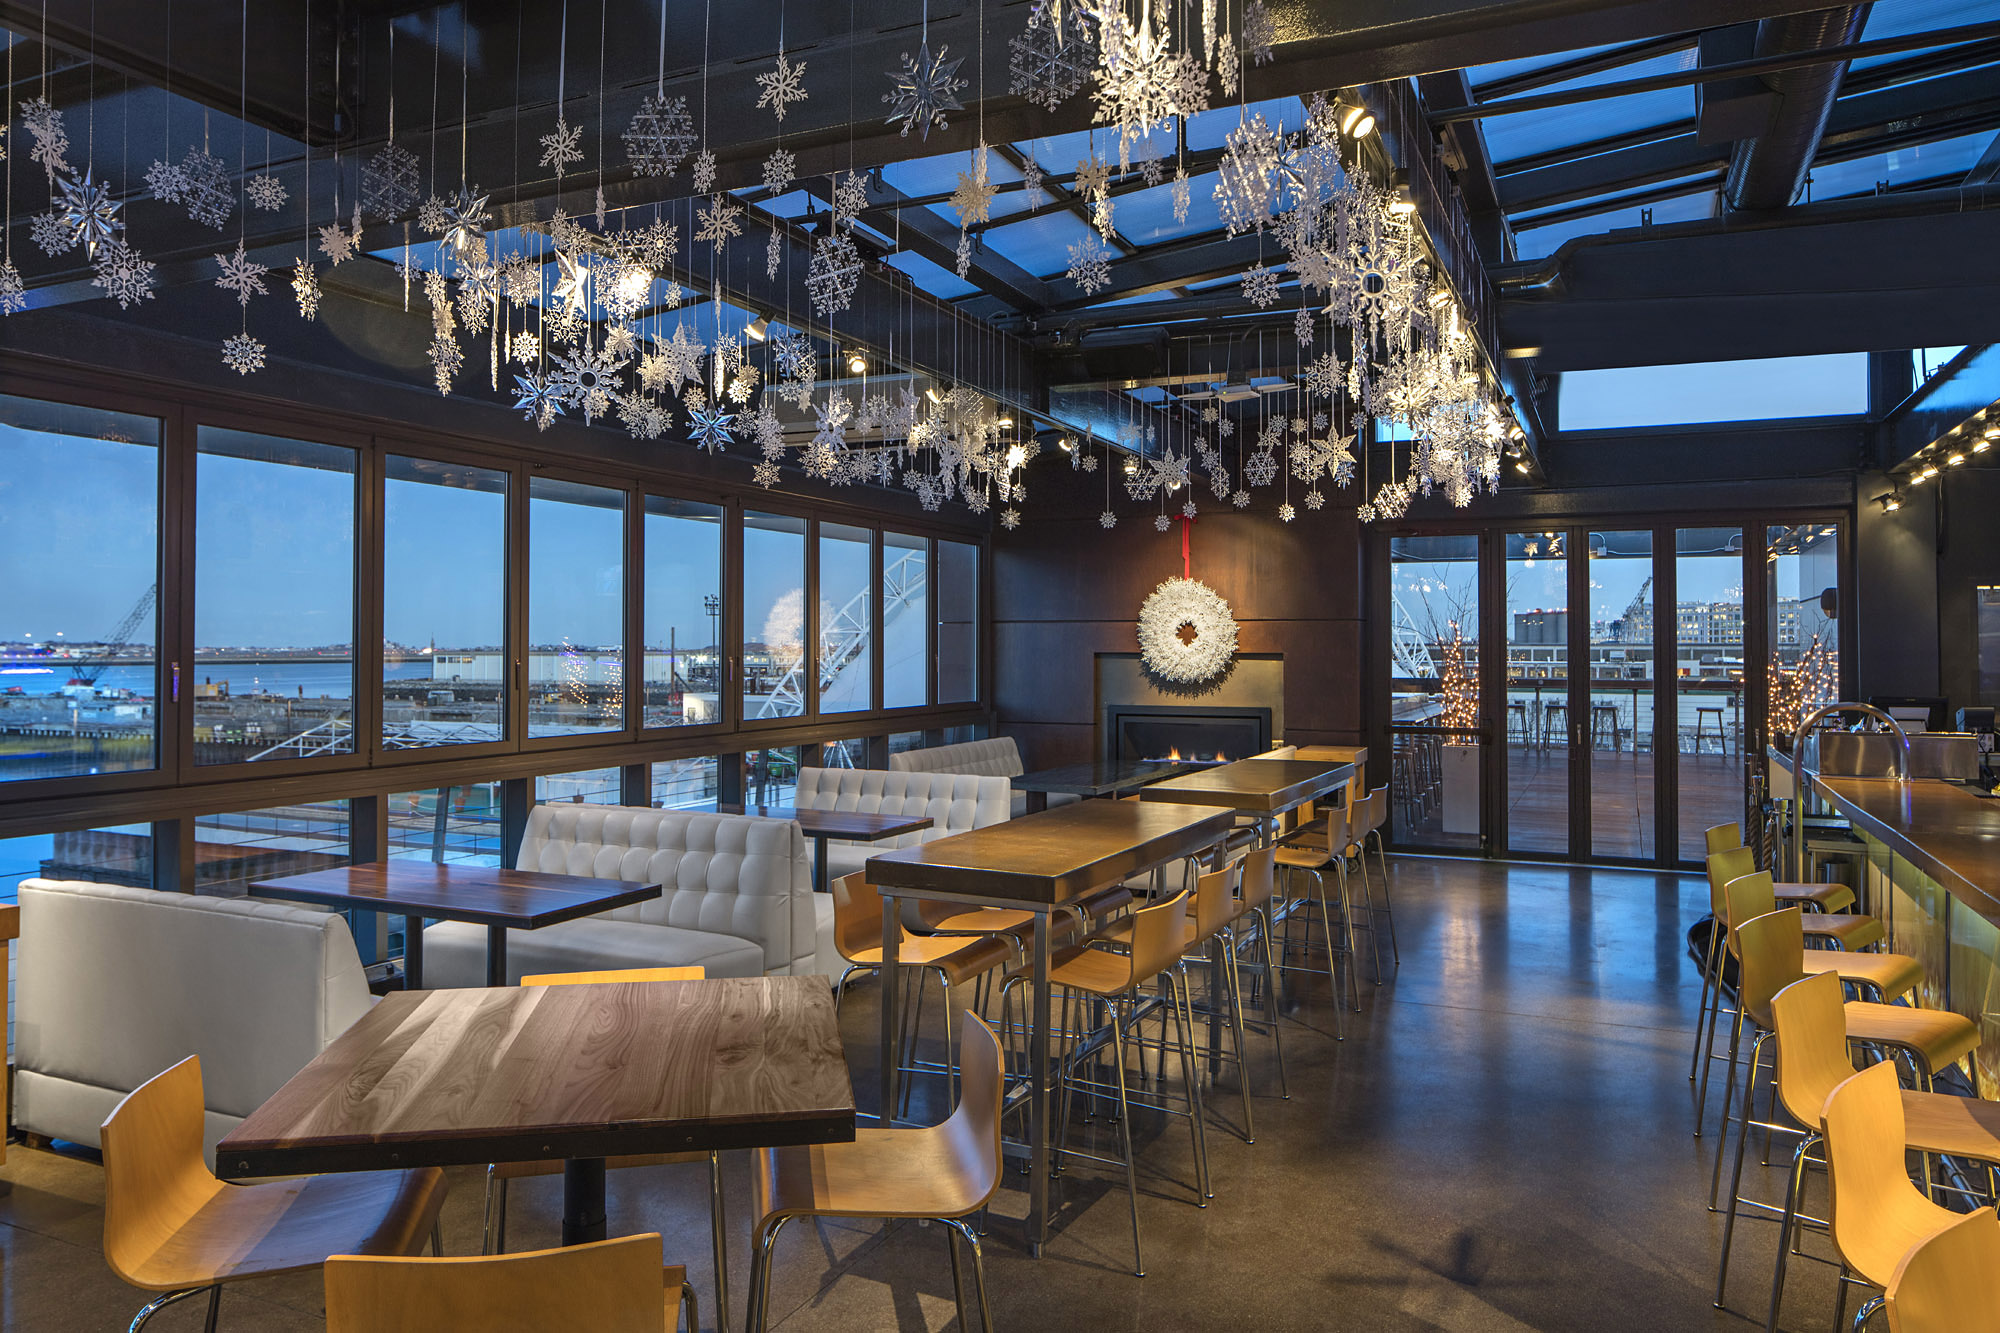 A Sky-High New Year's Eve at Legal Harborside [12/31/16]